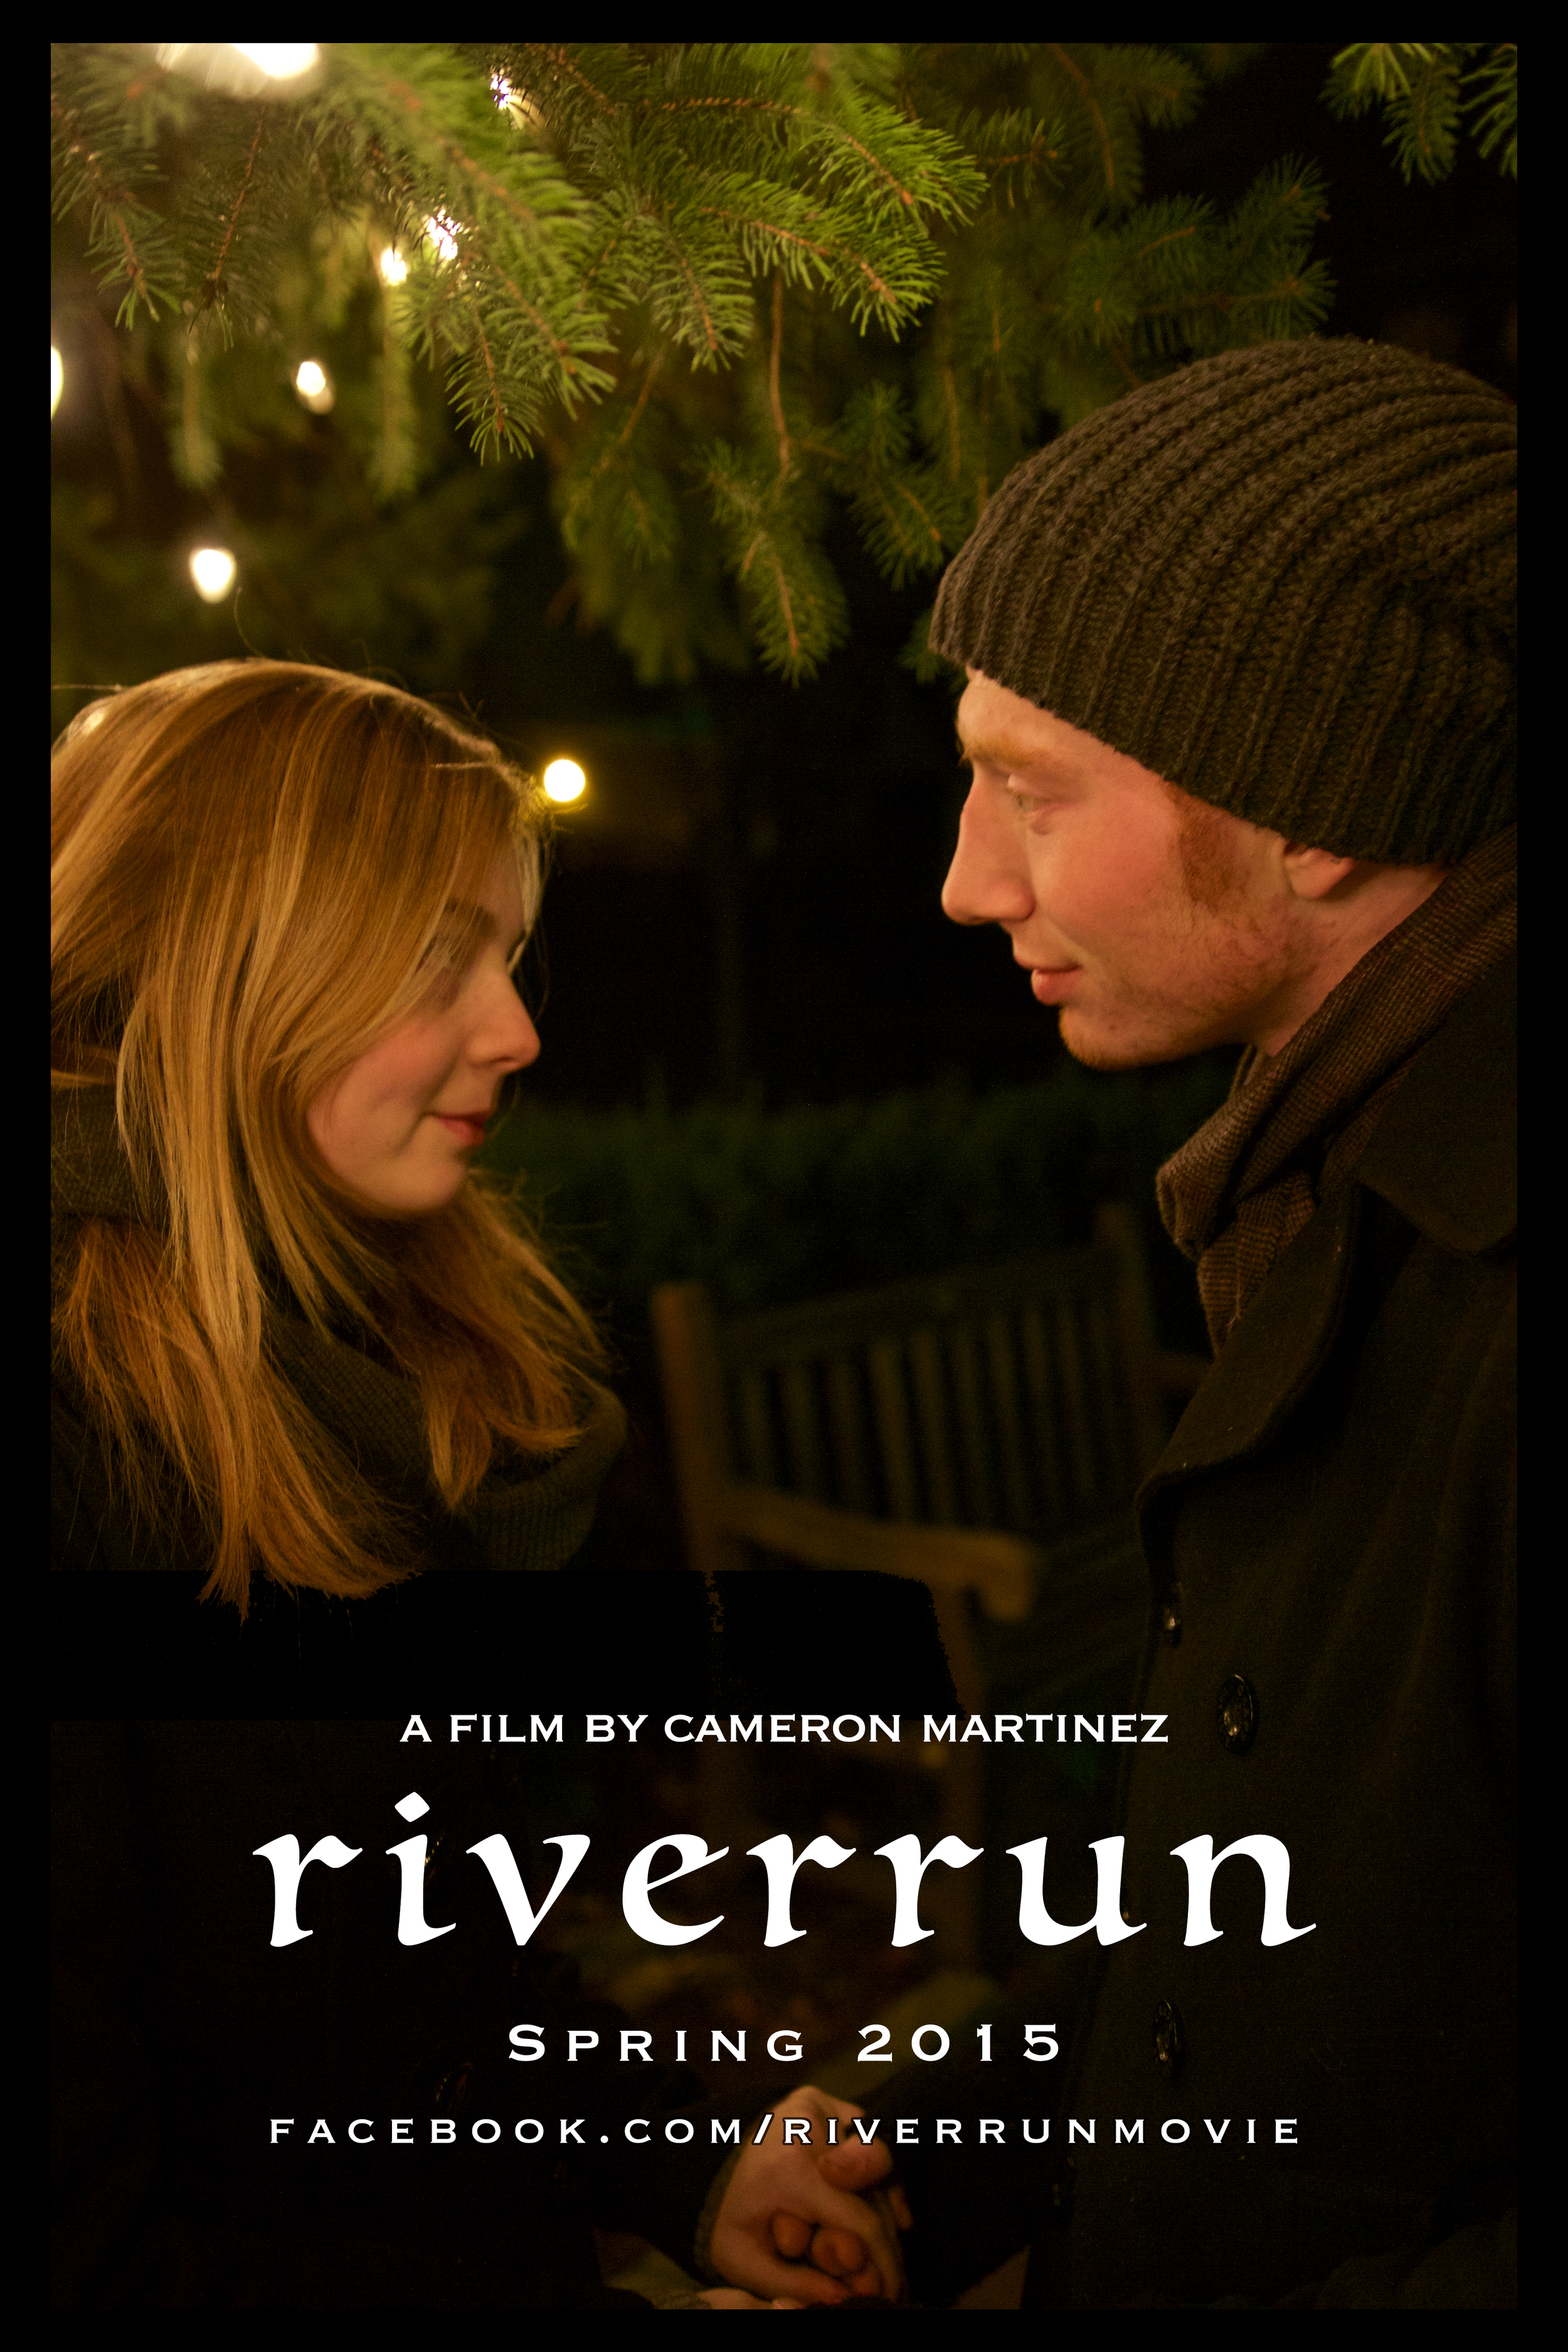 The poster for riverrun. Visit and like the official Facebook page at  www.facebook.com/RiverRunMovie